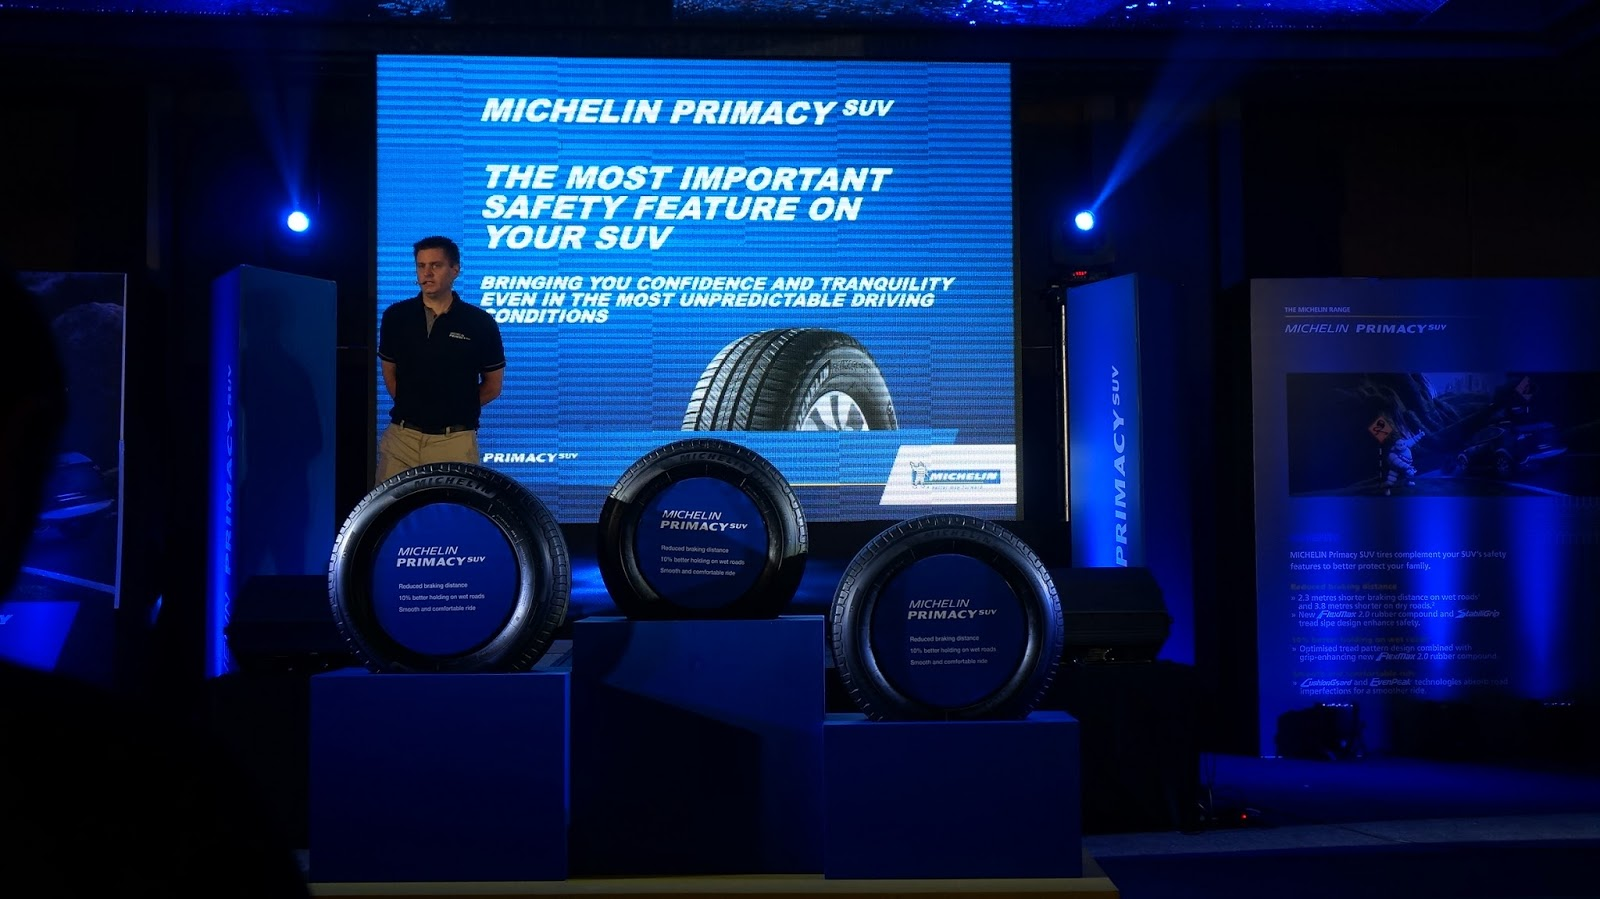 michelin primacy suv tires most important feature on your suv wazzup pilipinas news and events